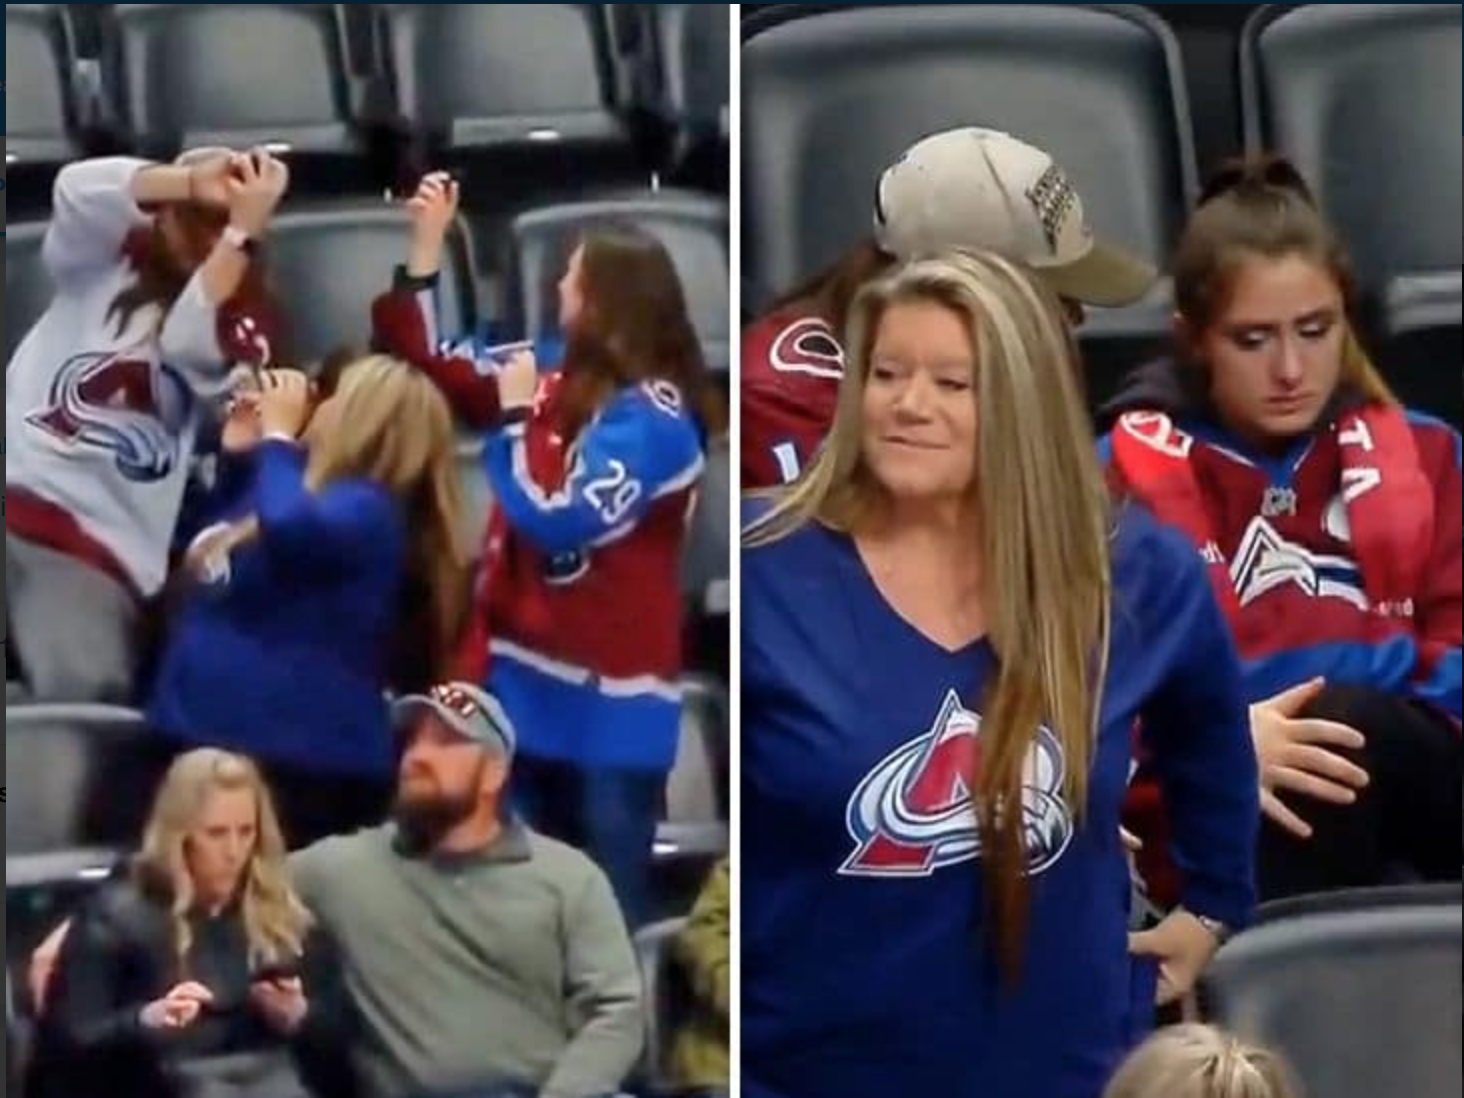 This Avalanche Fan Is In For An Avalanche Of Heartache After Elbowing His Girlfriend In The Face For A Puck And Then Giving It Away